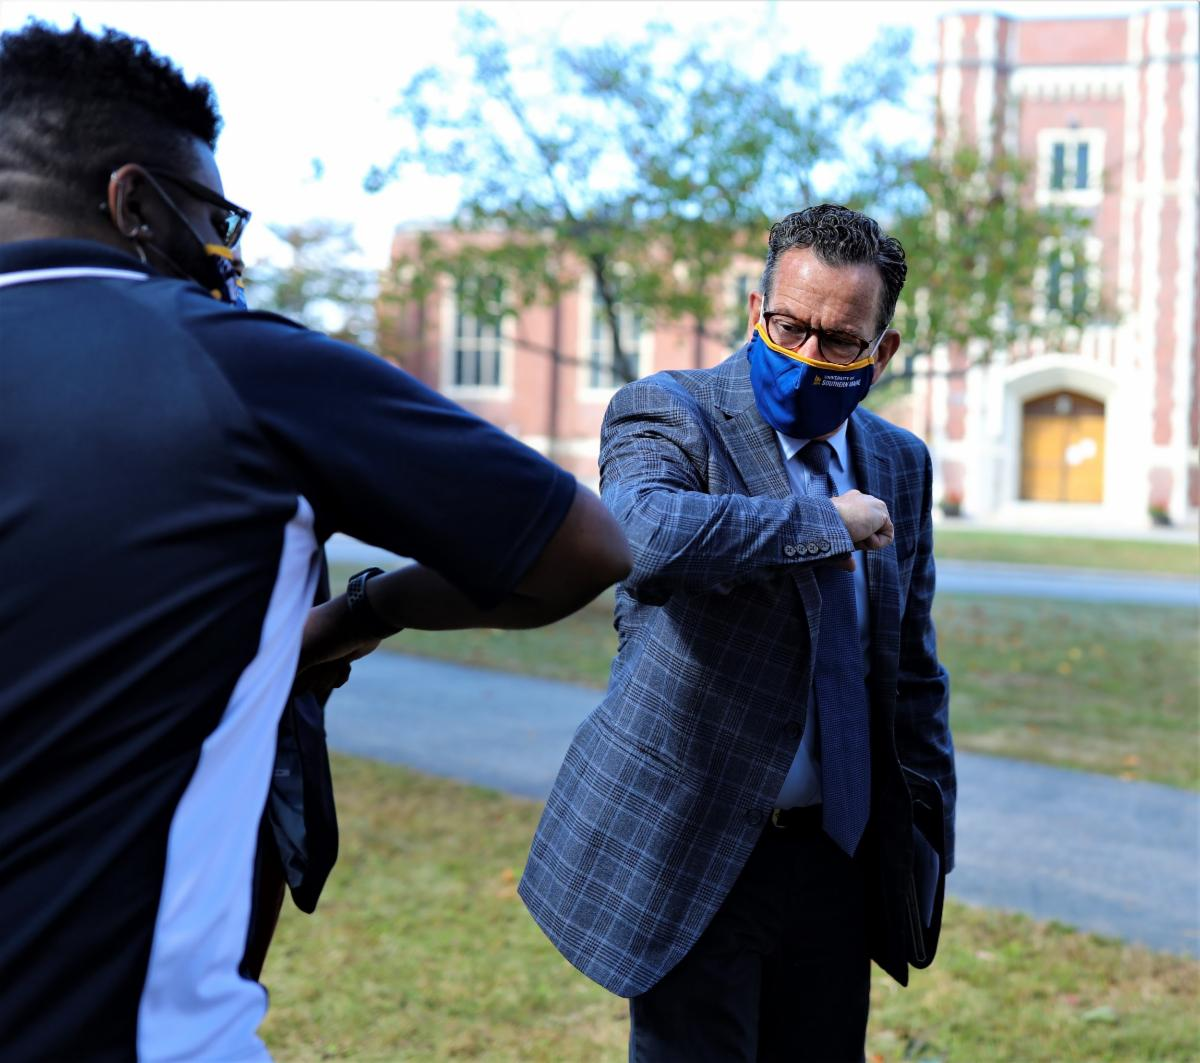 Chancellor Malloy bumping elbows with a UMS student graphic image